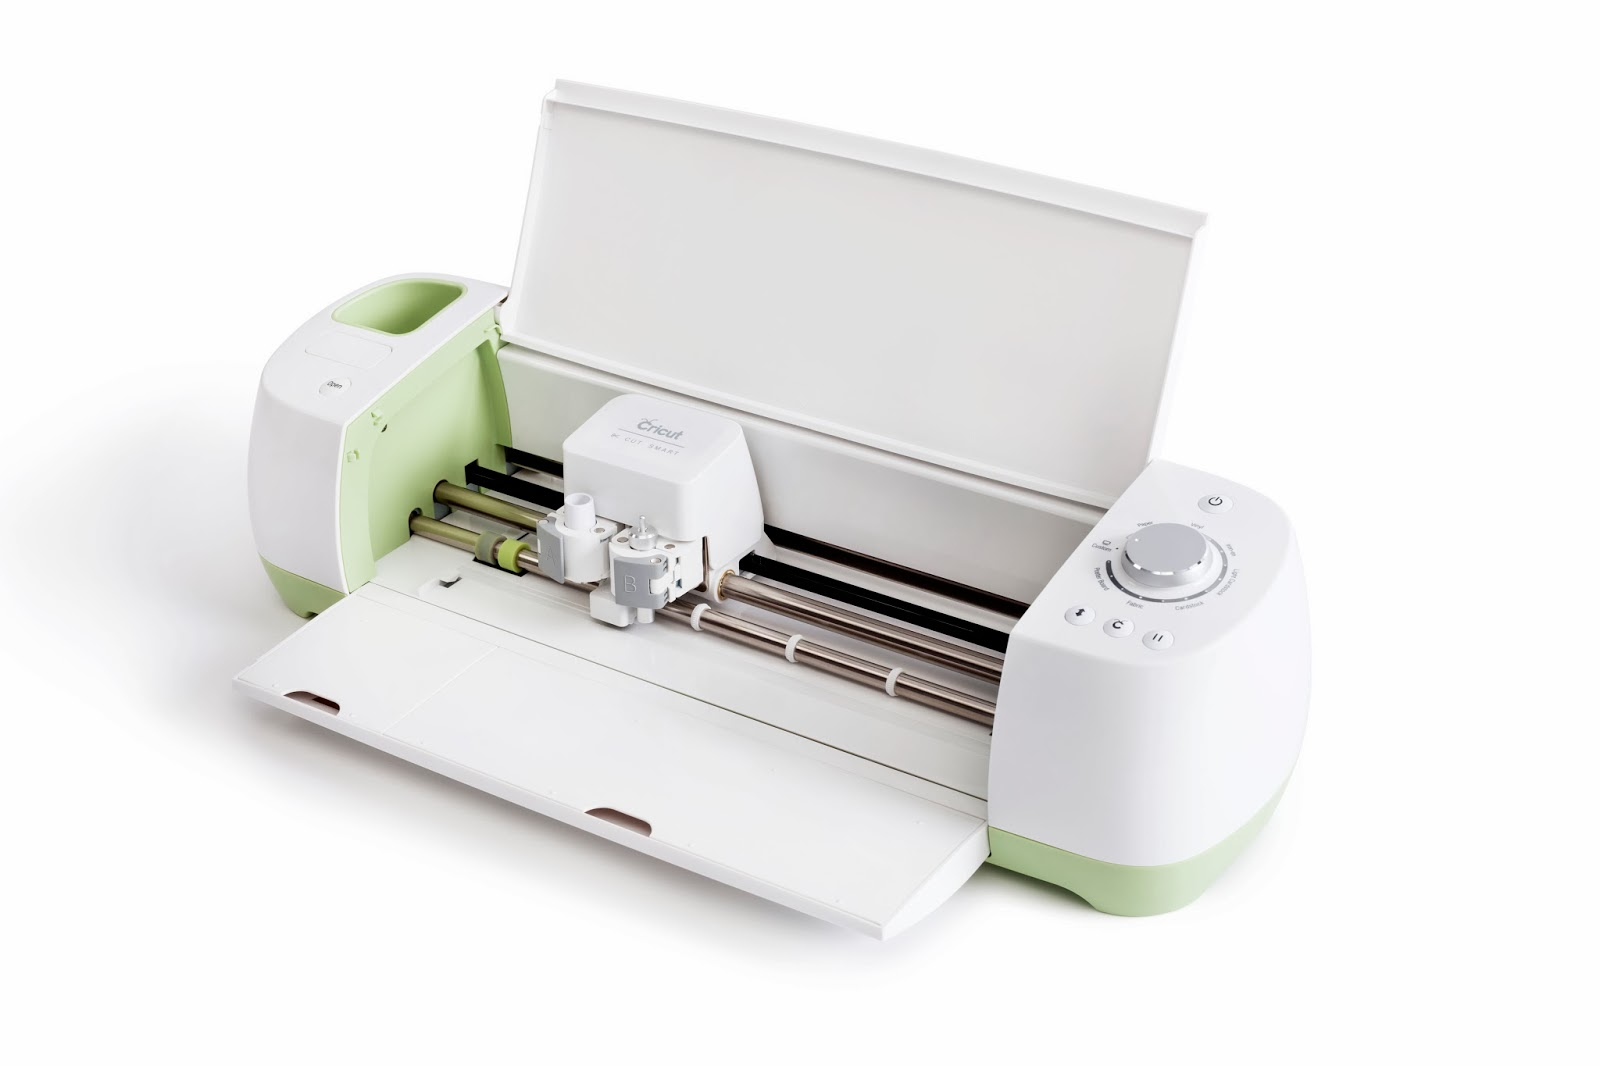 Does Cricut Craft Room Support Svg Files